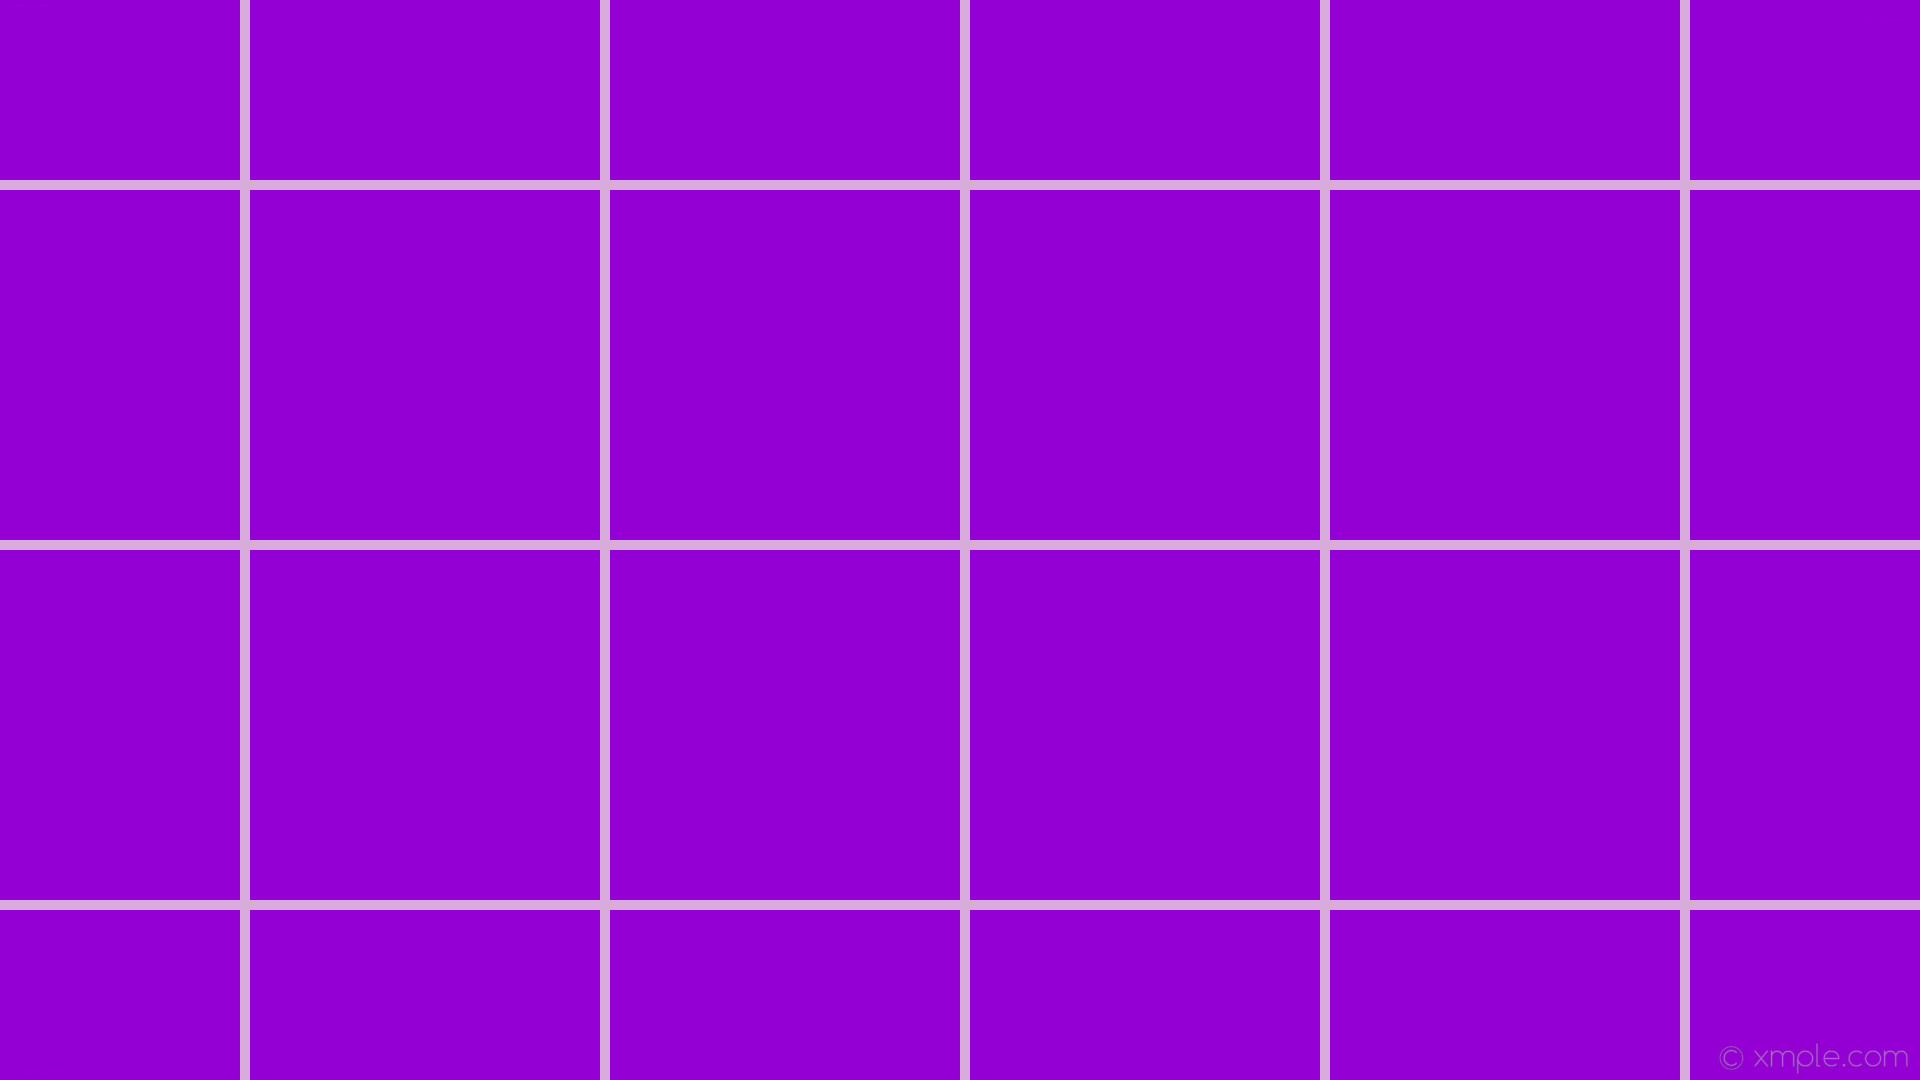 1920x1080 wallpaper graph paper white purple grid dark violet beige #9400d3 #f5f5dc  0° 10px